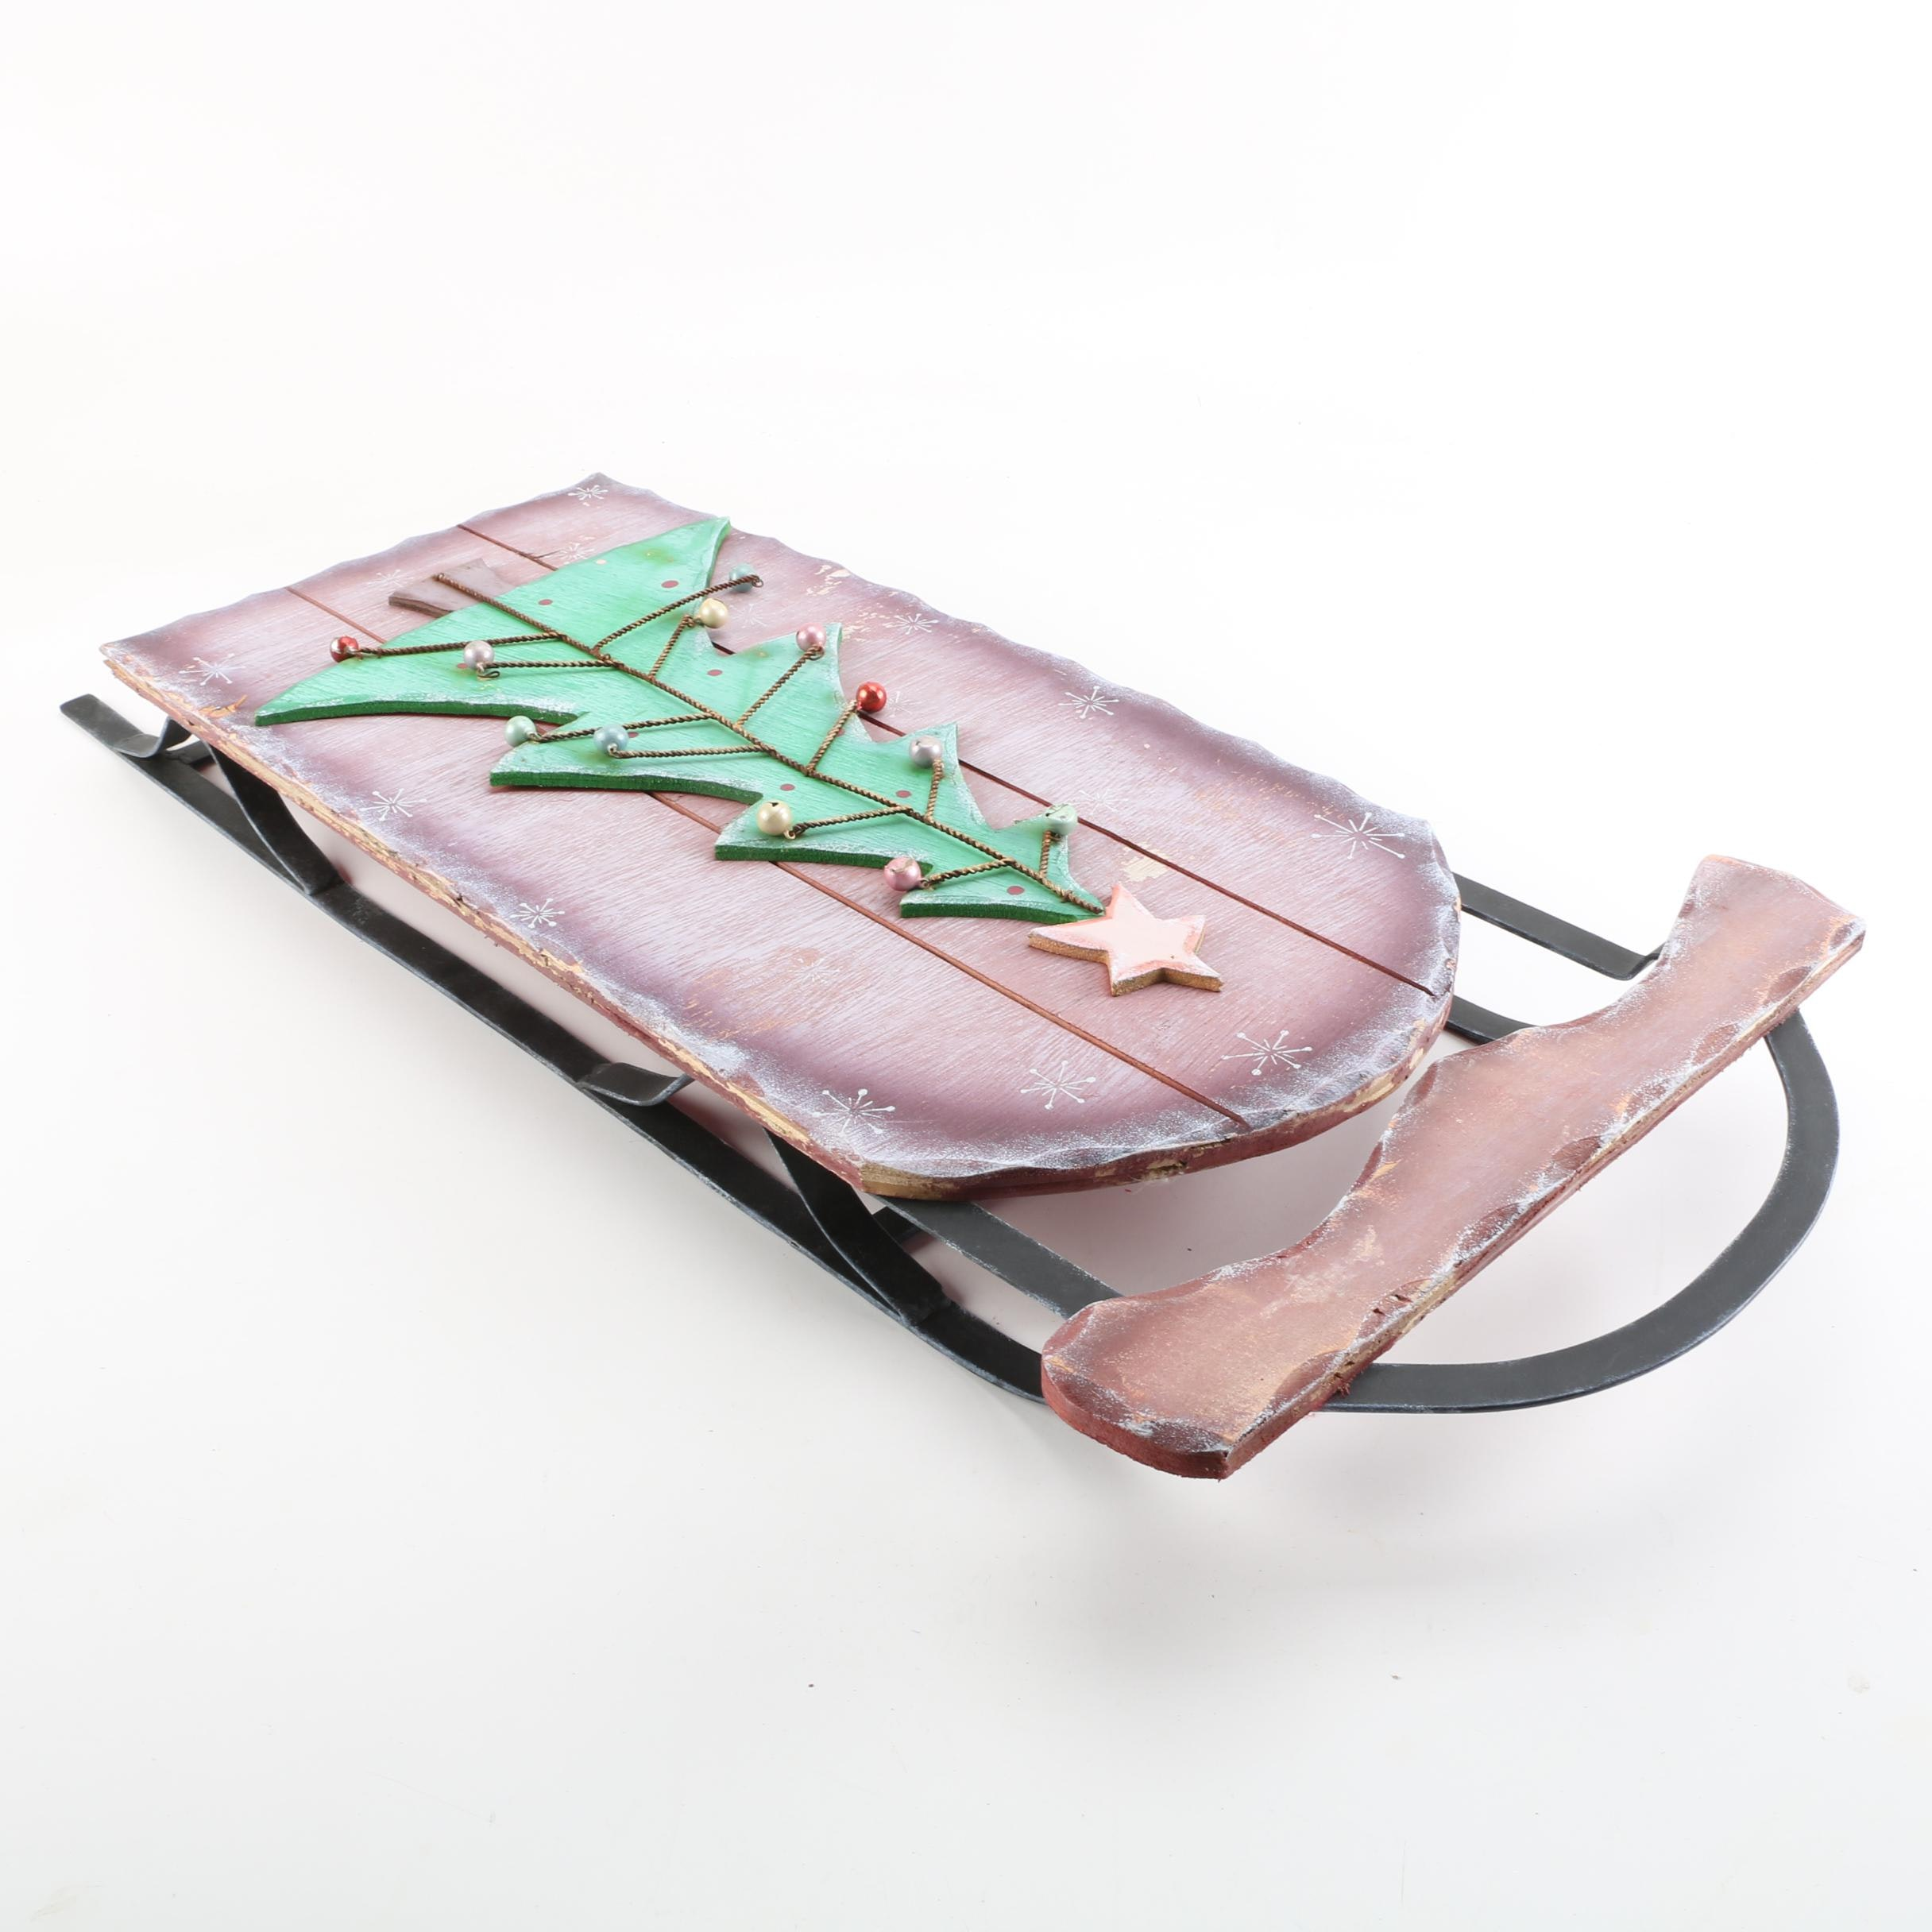 Decorative Christmas Sled with Tree Motif